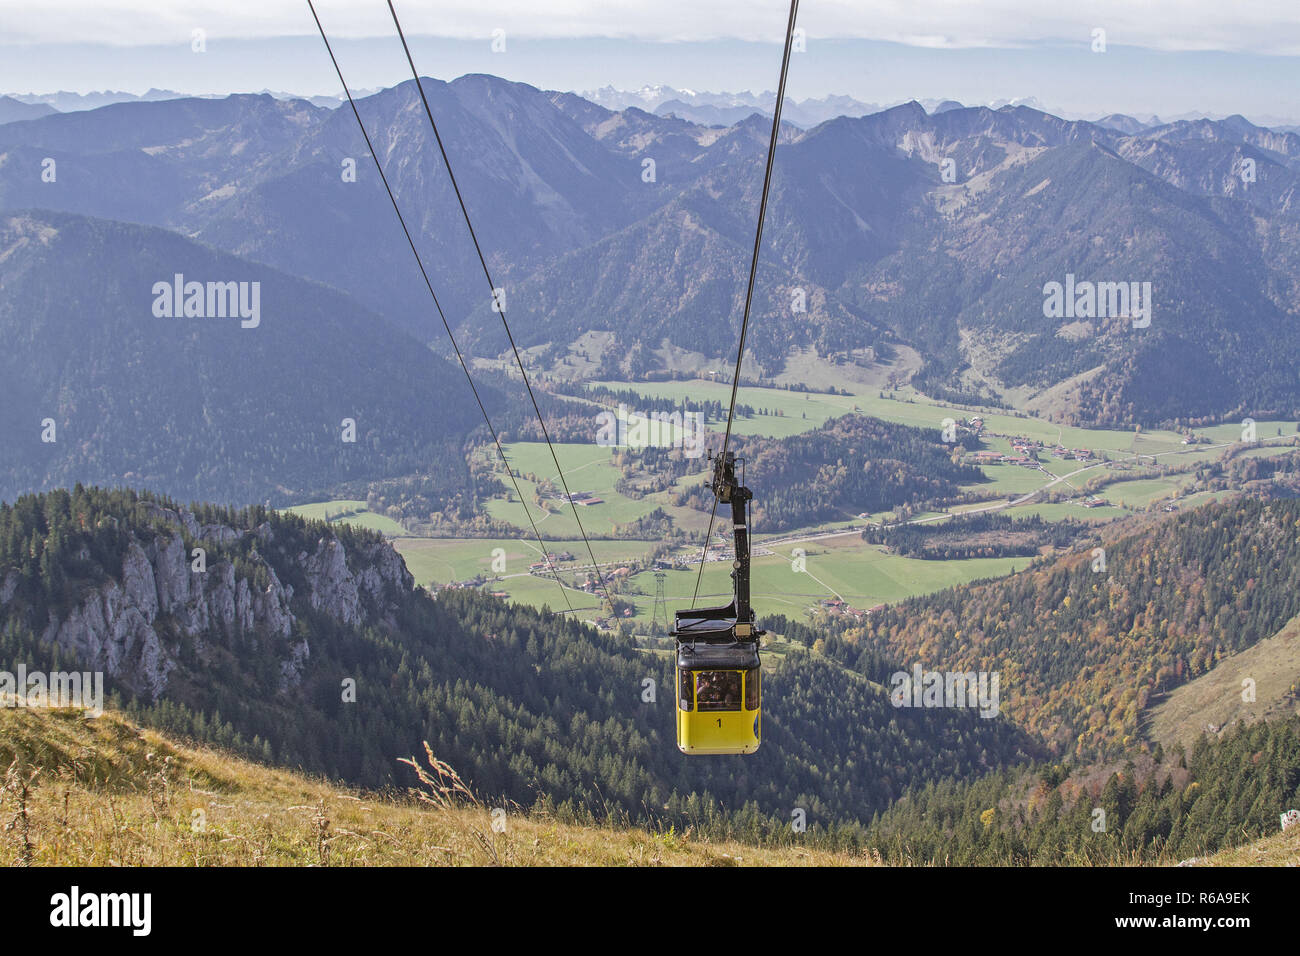 The Cable Car Takes You From Bayrischzell In The Leitzach Valley To The Famous Wendelstein Mountain In Just A Few Minutes - Stock Image